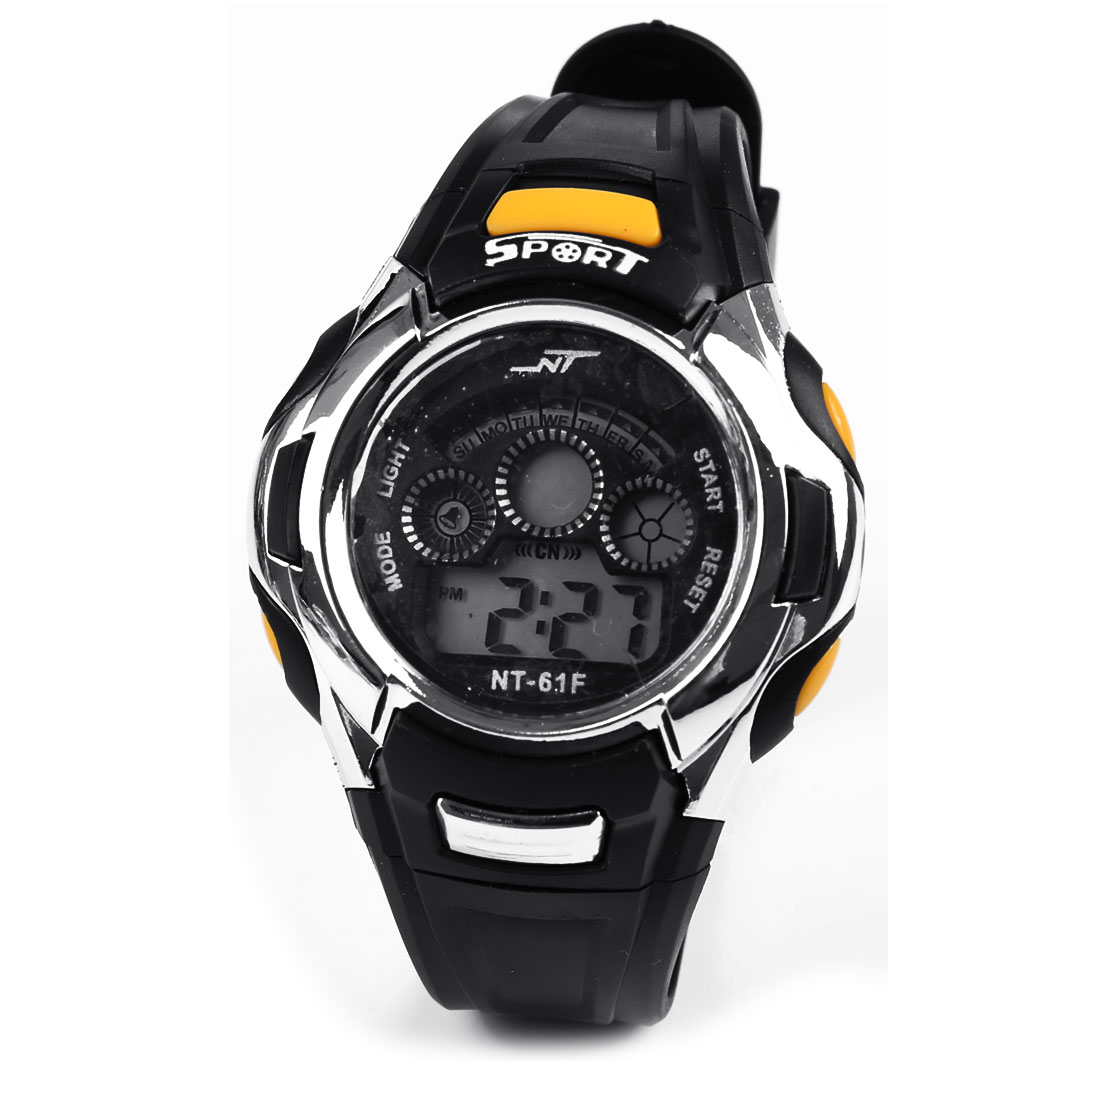 Digital Display Water Resistant Black Adjustable Band Sports Wrist Watch Stopwatch